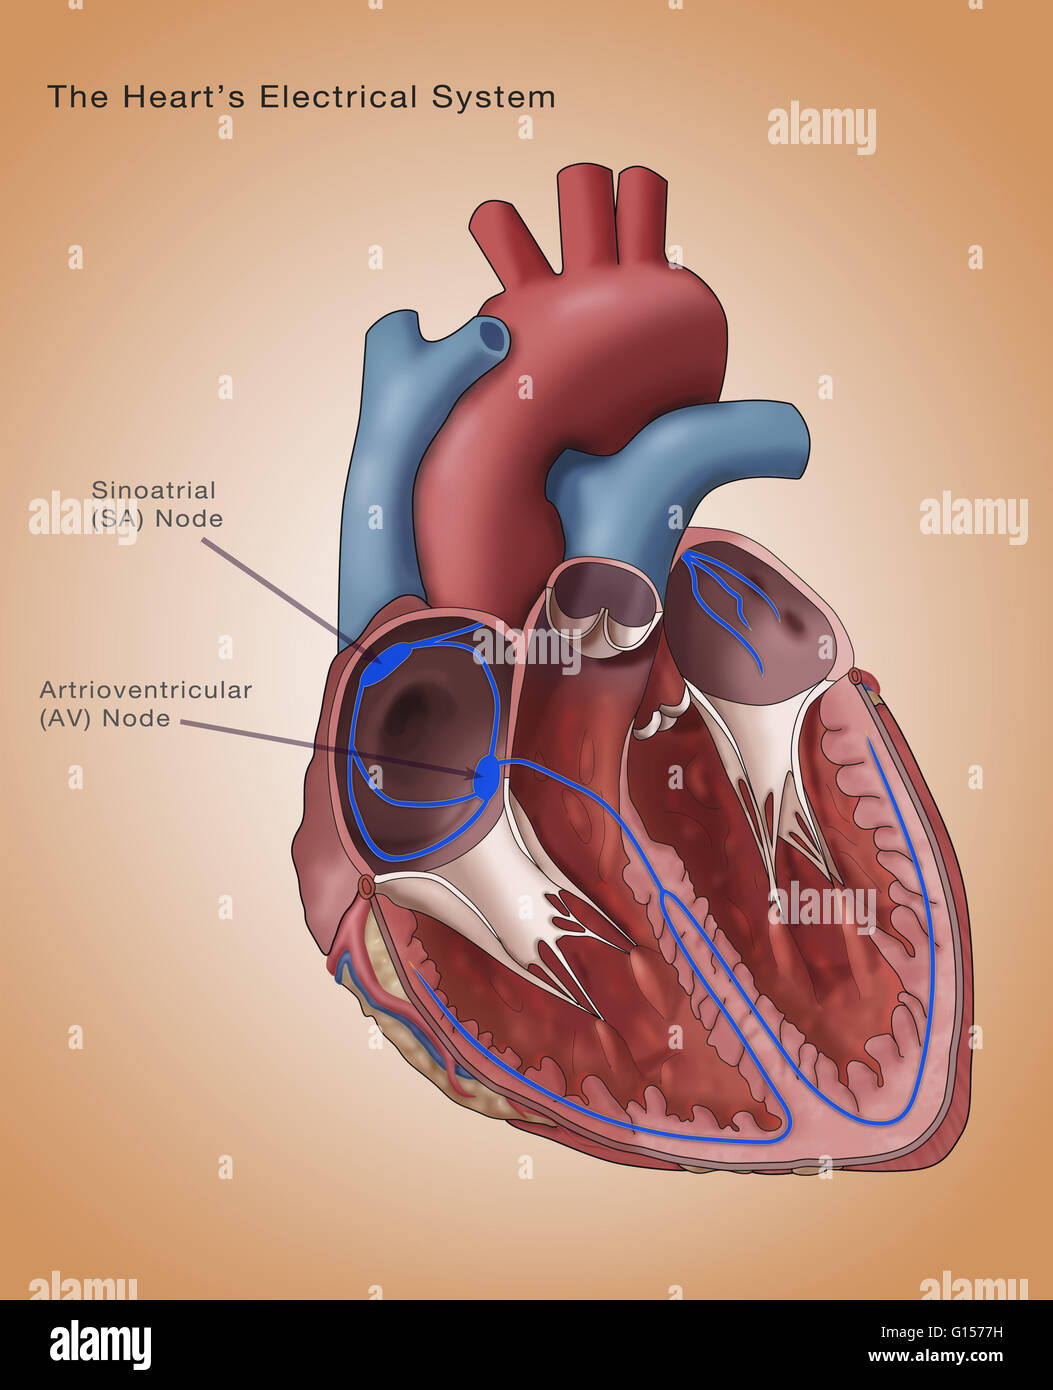 sinoatrial node diagram trailer electrical plug wiring heart system stock photos and